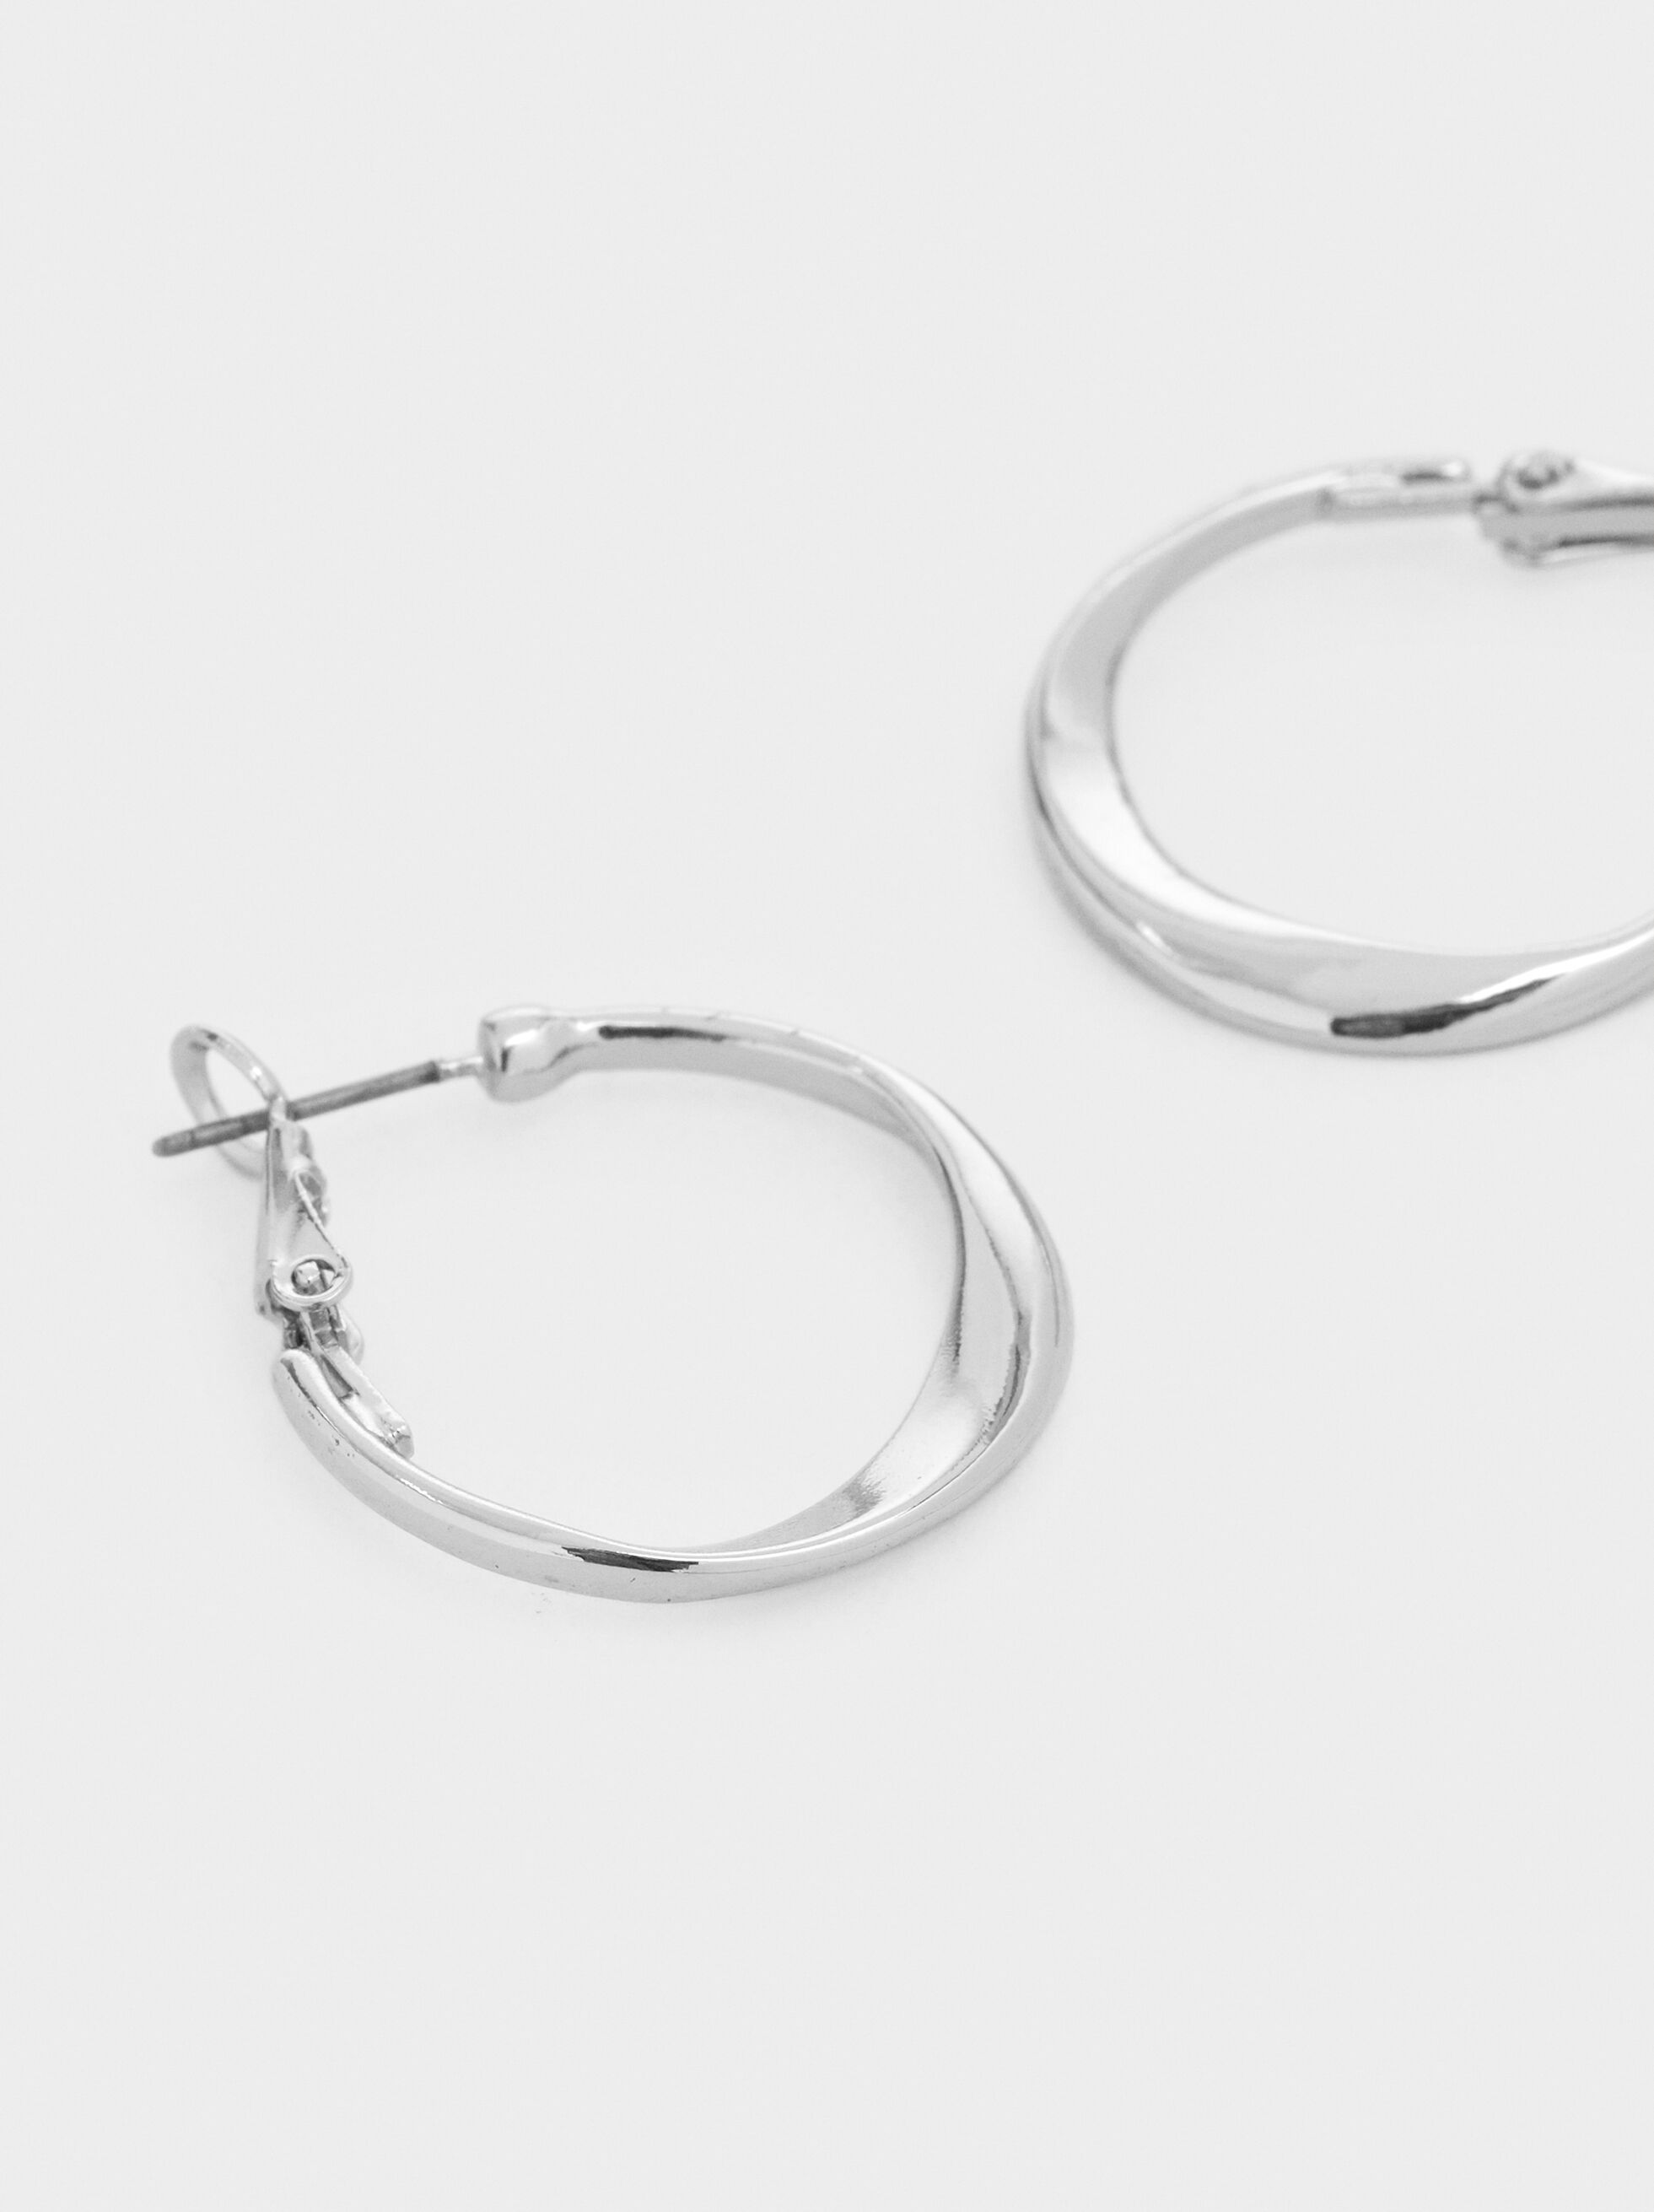 Basic Small Hoop Earrings, Silver, hi-res